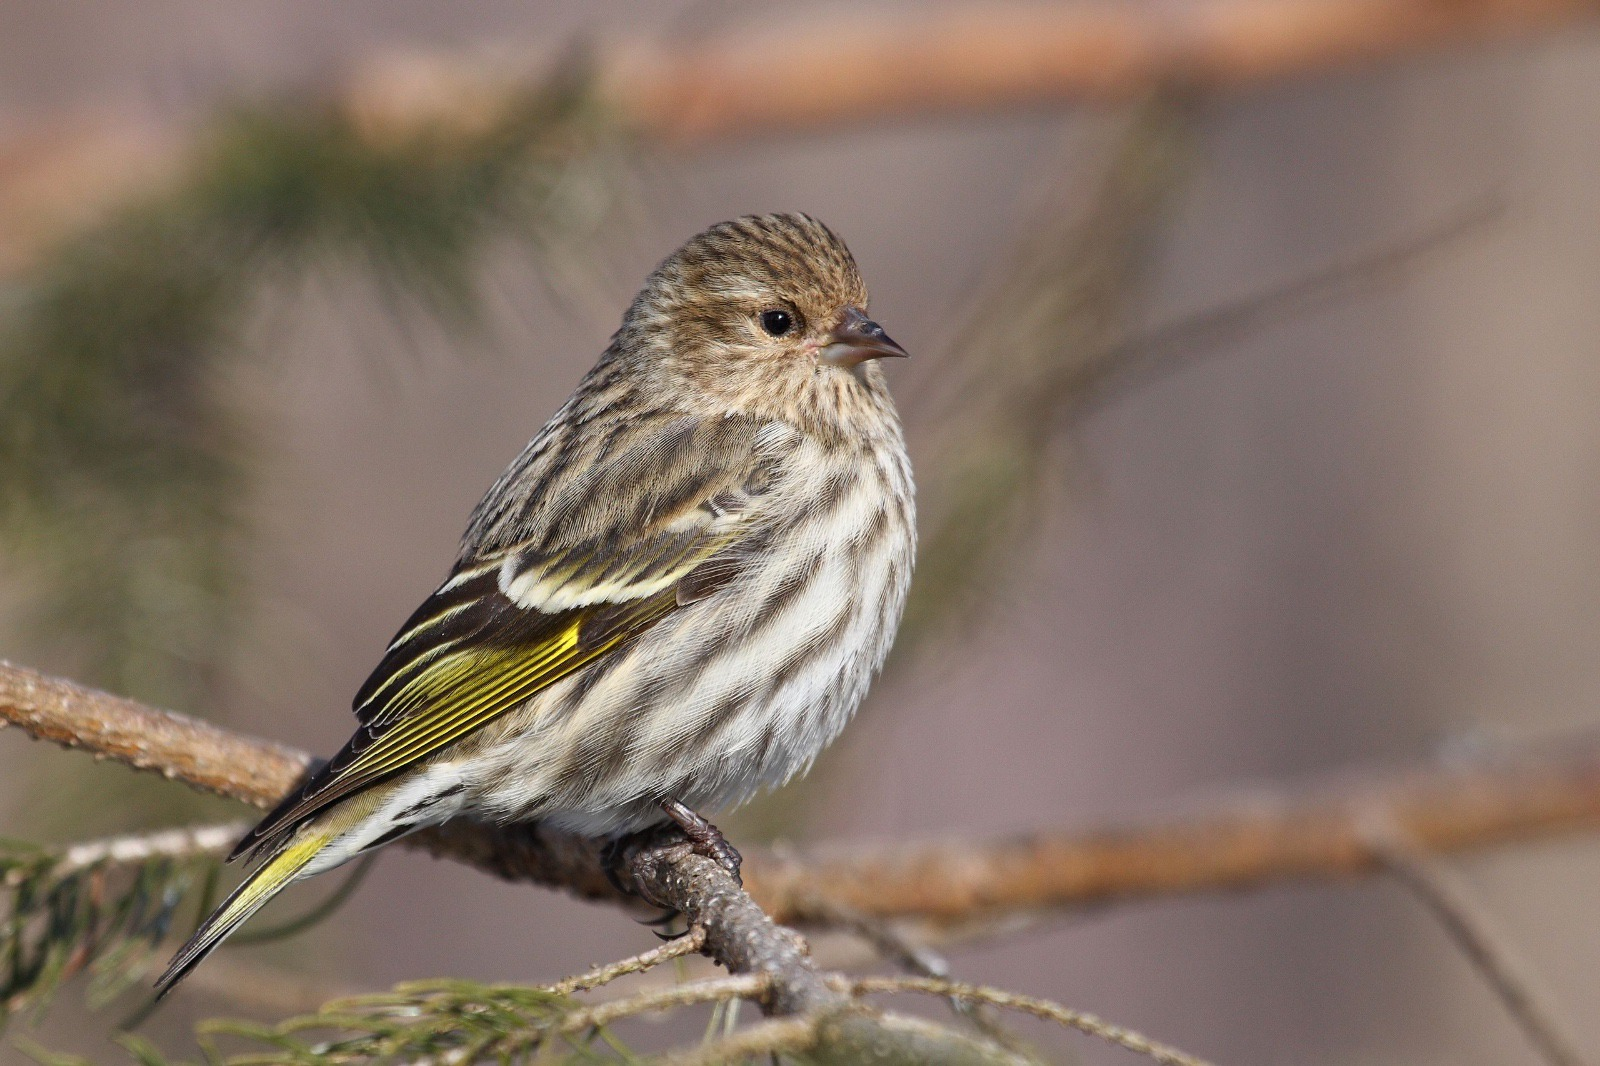 Pine Siskin by Simon Pierre Barrette